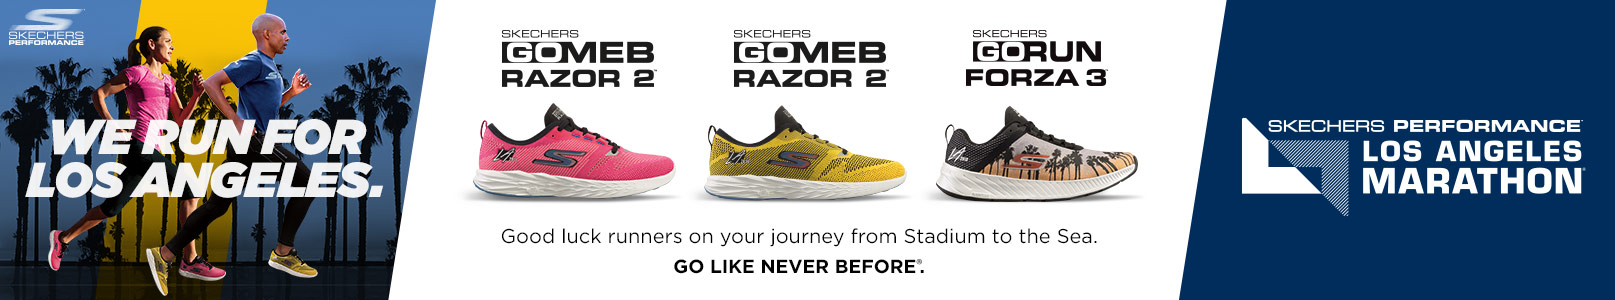 Shop the Skechers Performance Los Angeles Marathon 2018 collection